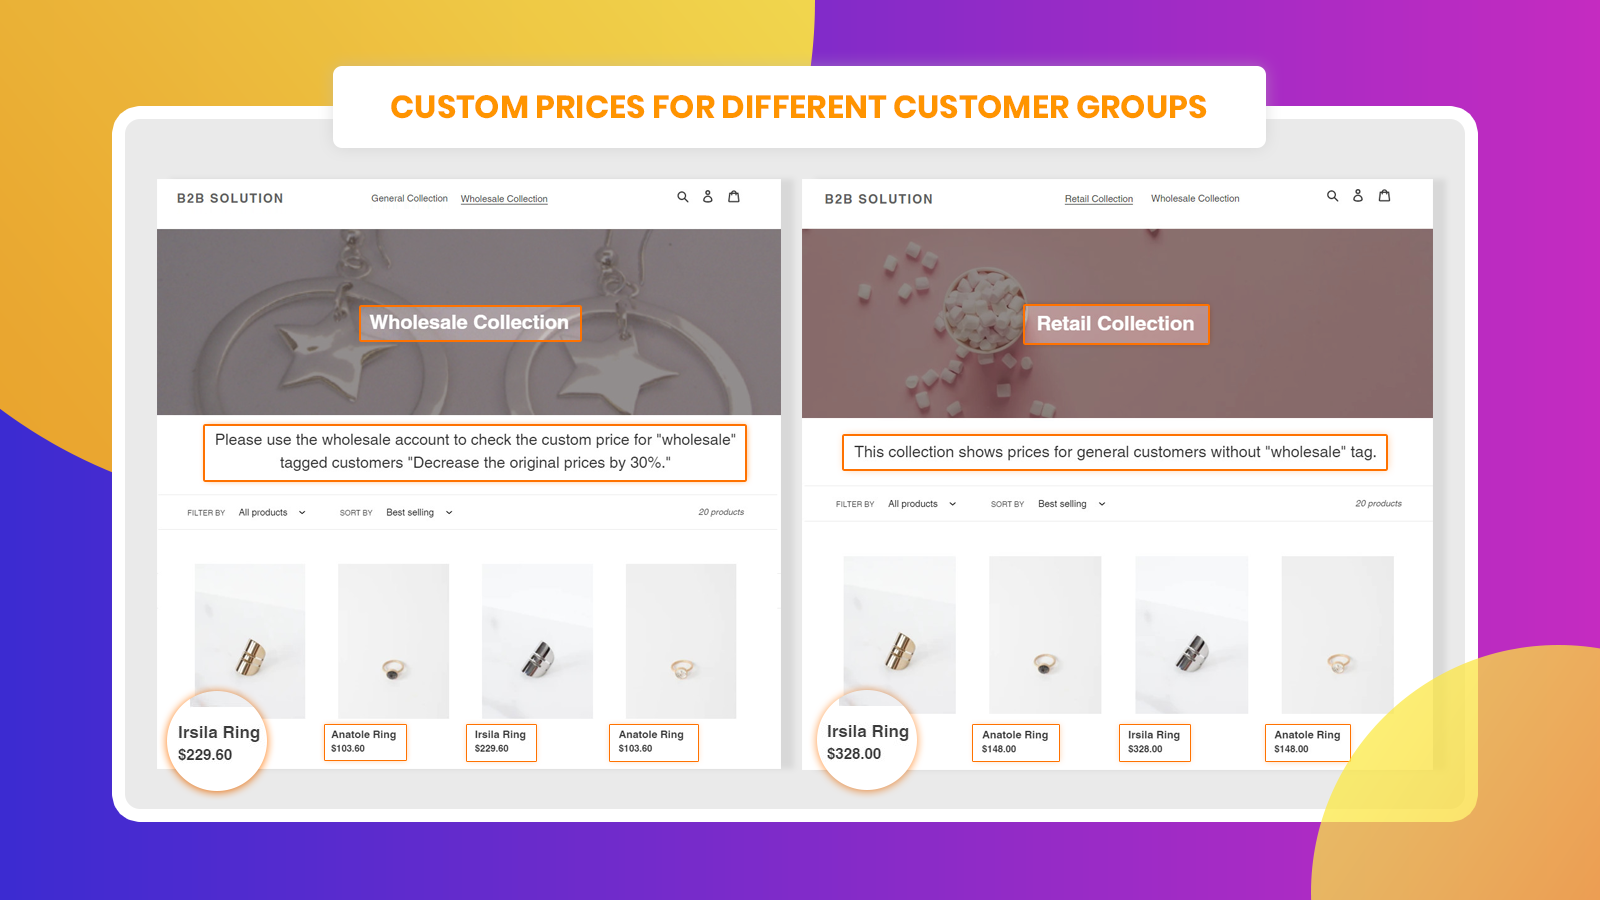 Discounted Pricing & Custom Pricing b2b and wholesale customers